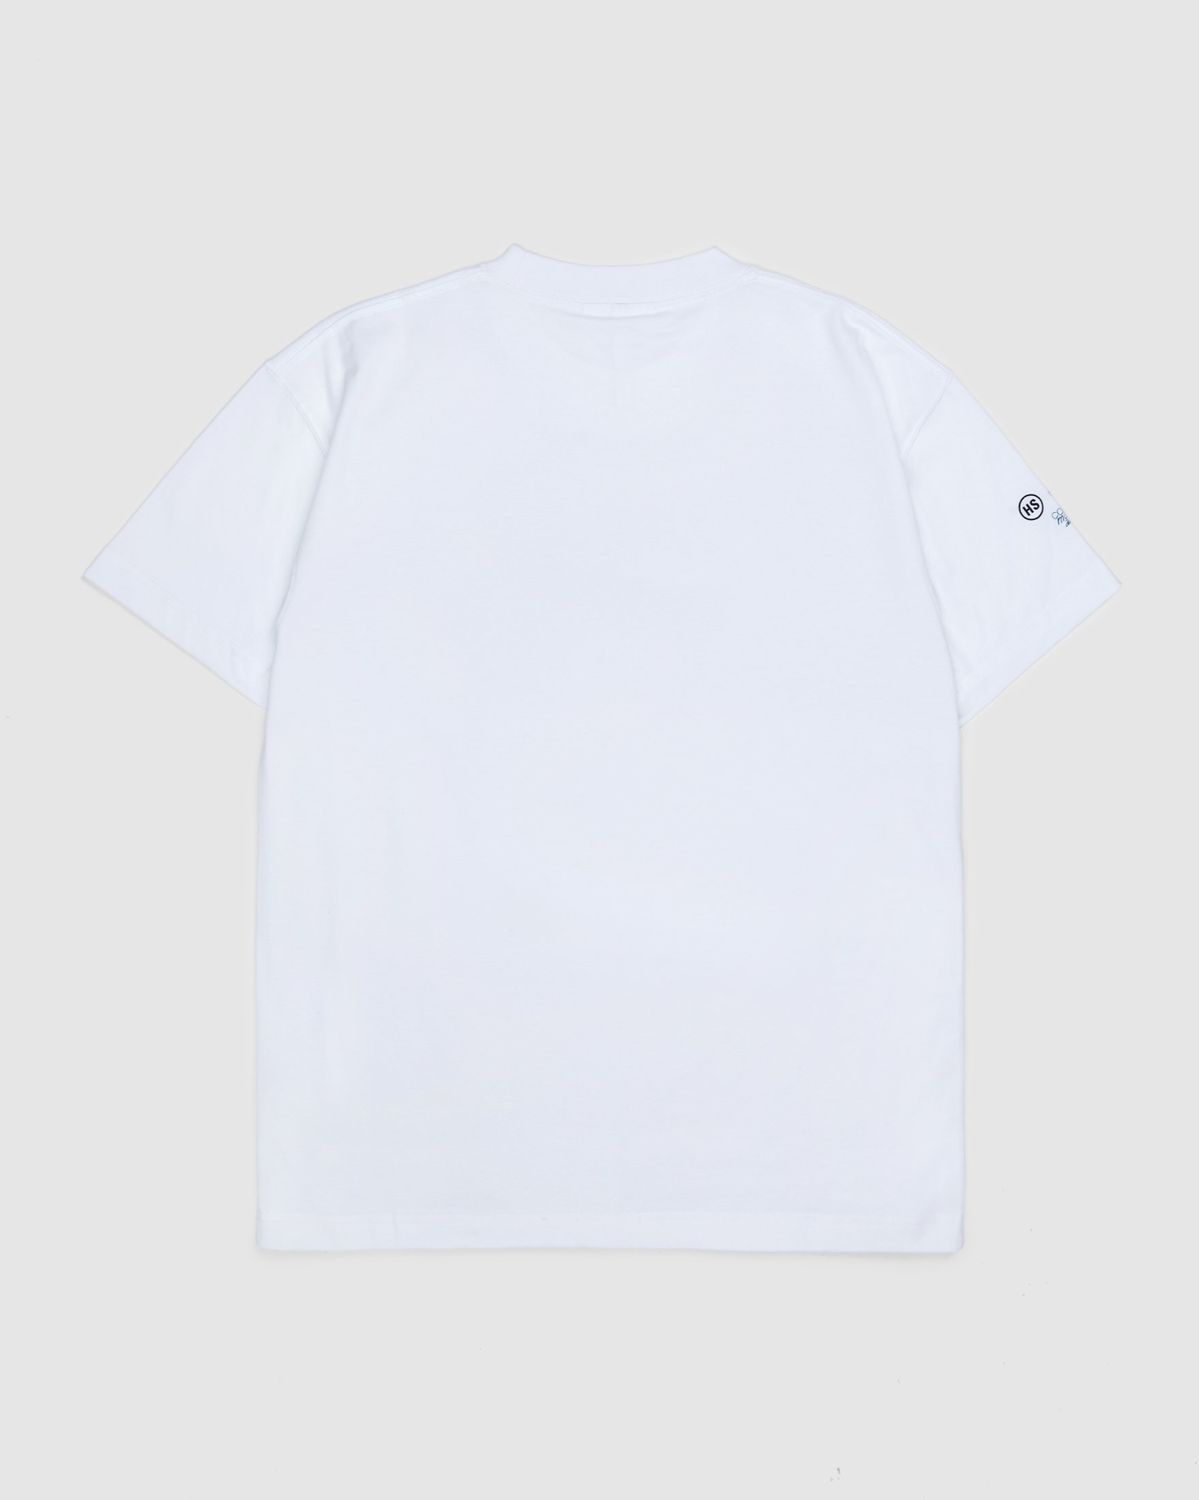 Colette Mon Amour x Soulland —  Snoopy Bed White T-Shirt - Image 2